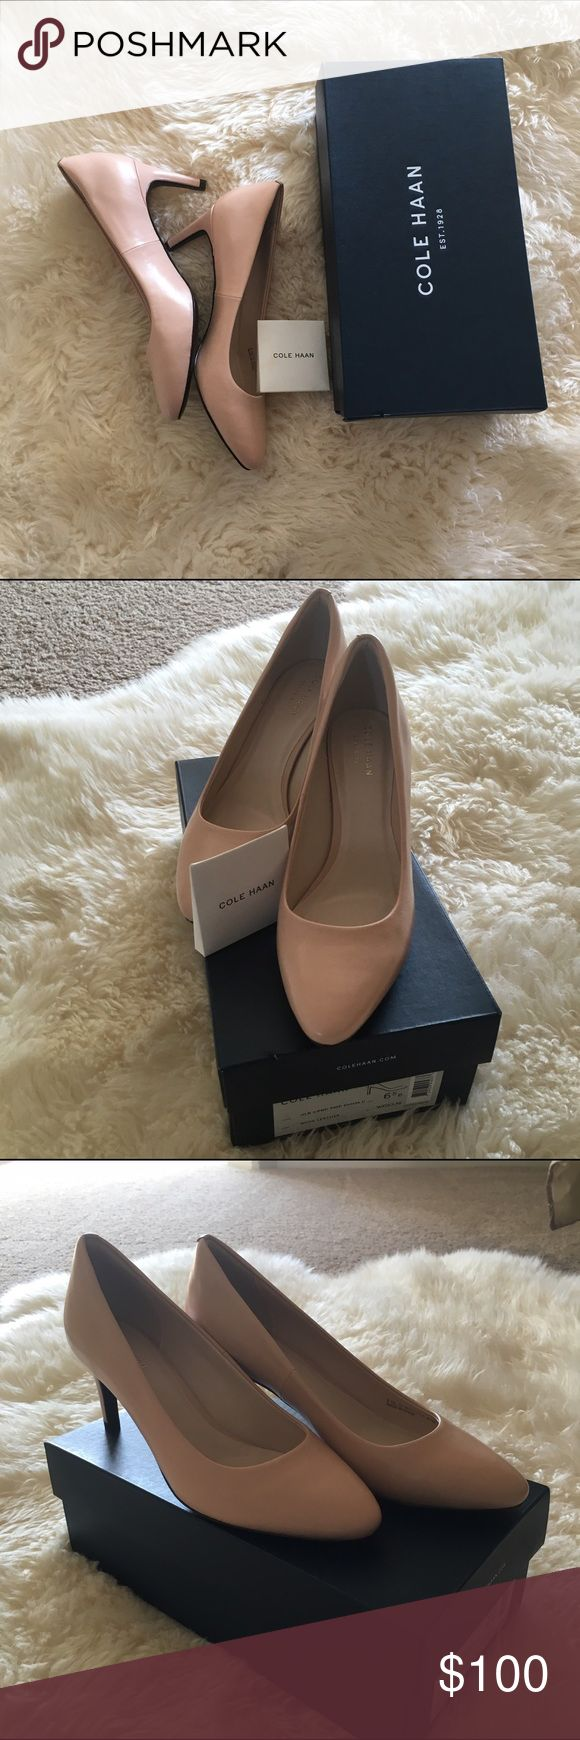 Cole Haan Hellen Grand Pump (65mm) Gorgeous Cole Haan pumps in nude leather. Comes with spare heel tips. New in box, size 6.5 B (narrow. Cole Haan Shoes Heels